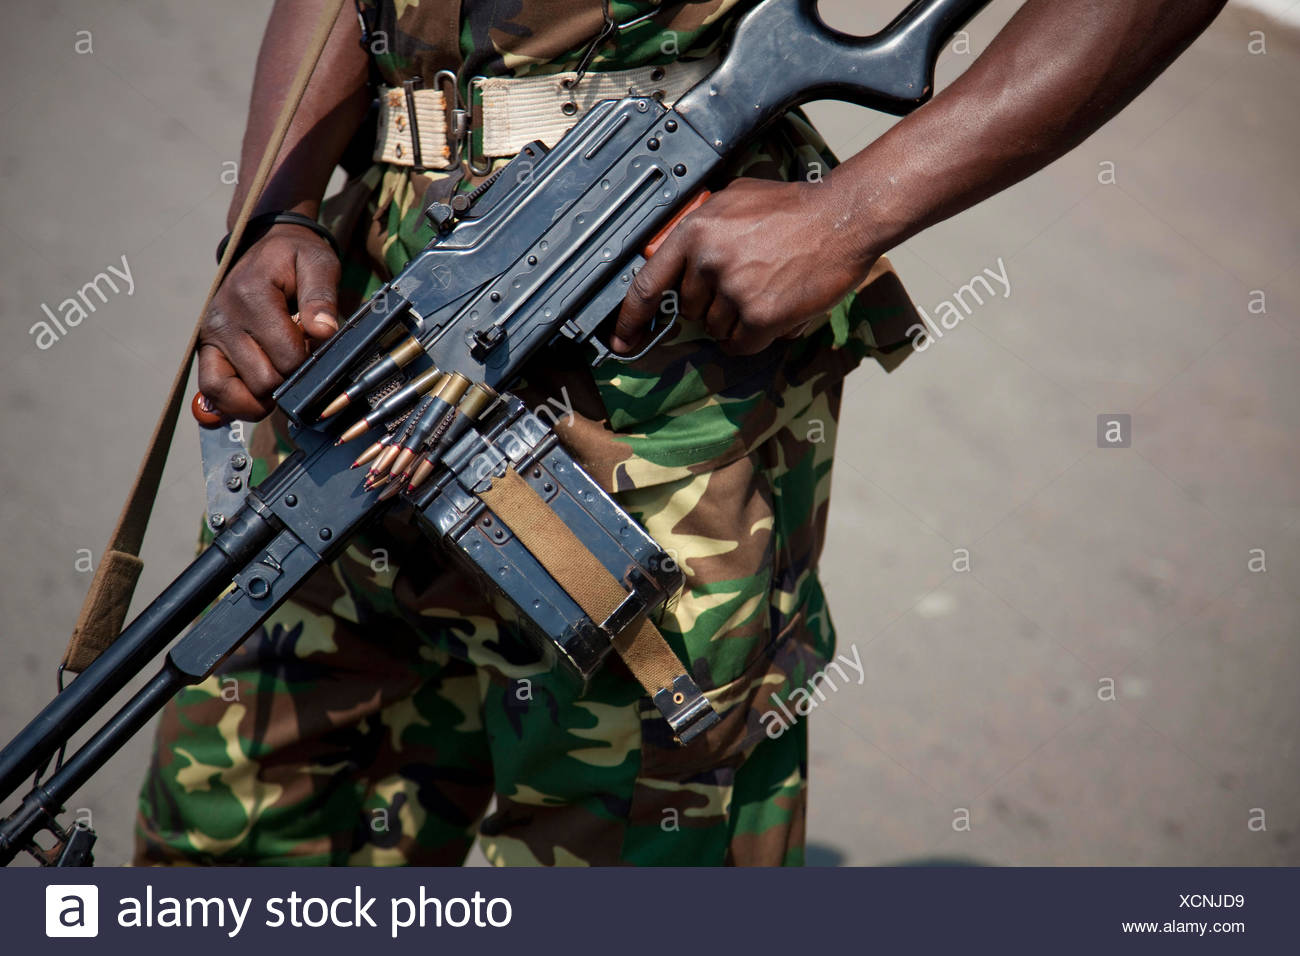 machine gun hanging over a soldier's shoulder during an event at the Independence Day (Juli 1), Burundi, Bujumbura Marie, Bujumbura - Stock Image